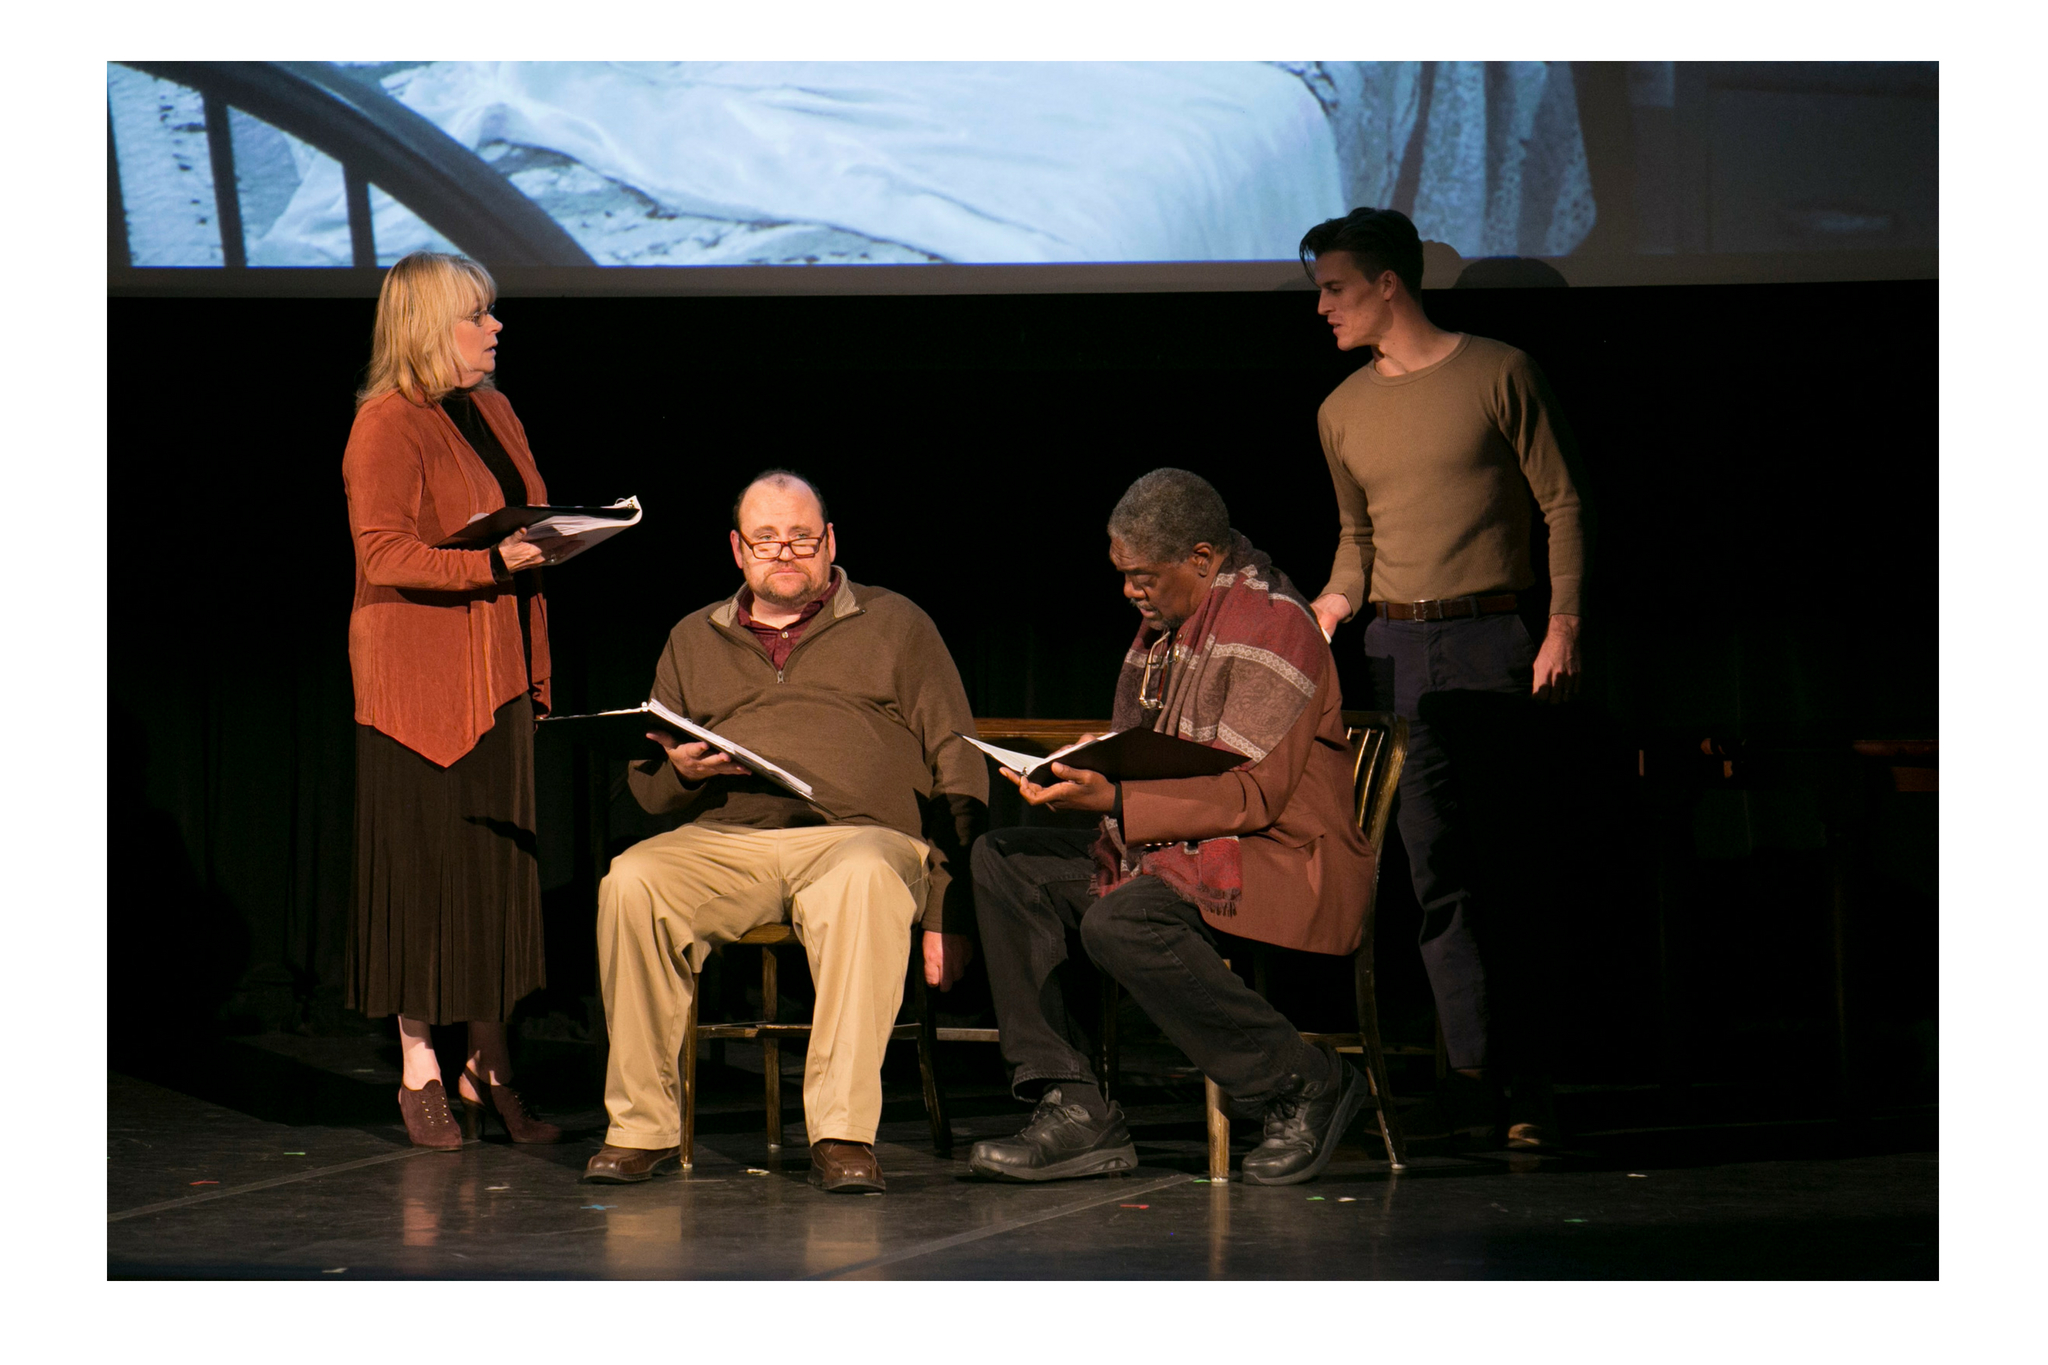 Karen MacDonald (Wife) Brandon Whitehead (Dying Man), Johnny Lee Davenport (Pastor), and Michael Underhill (Son) in Sermon on the Mount, Theatre in the Rough, 2017-Photo by Evgenia Eliseeva